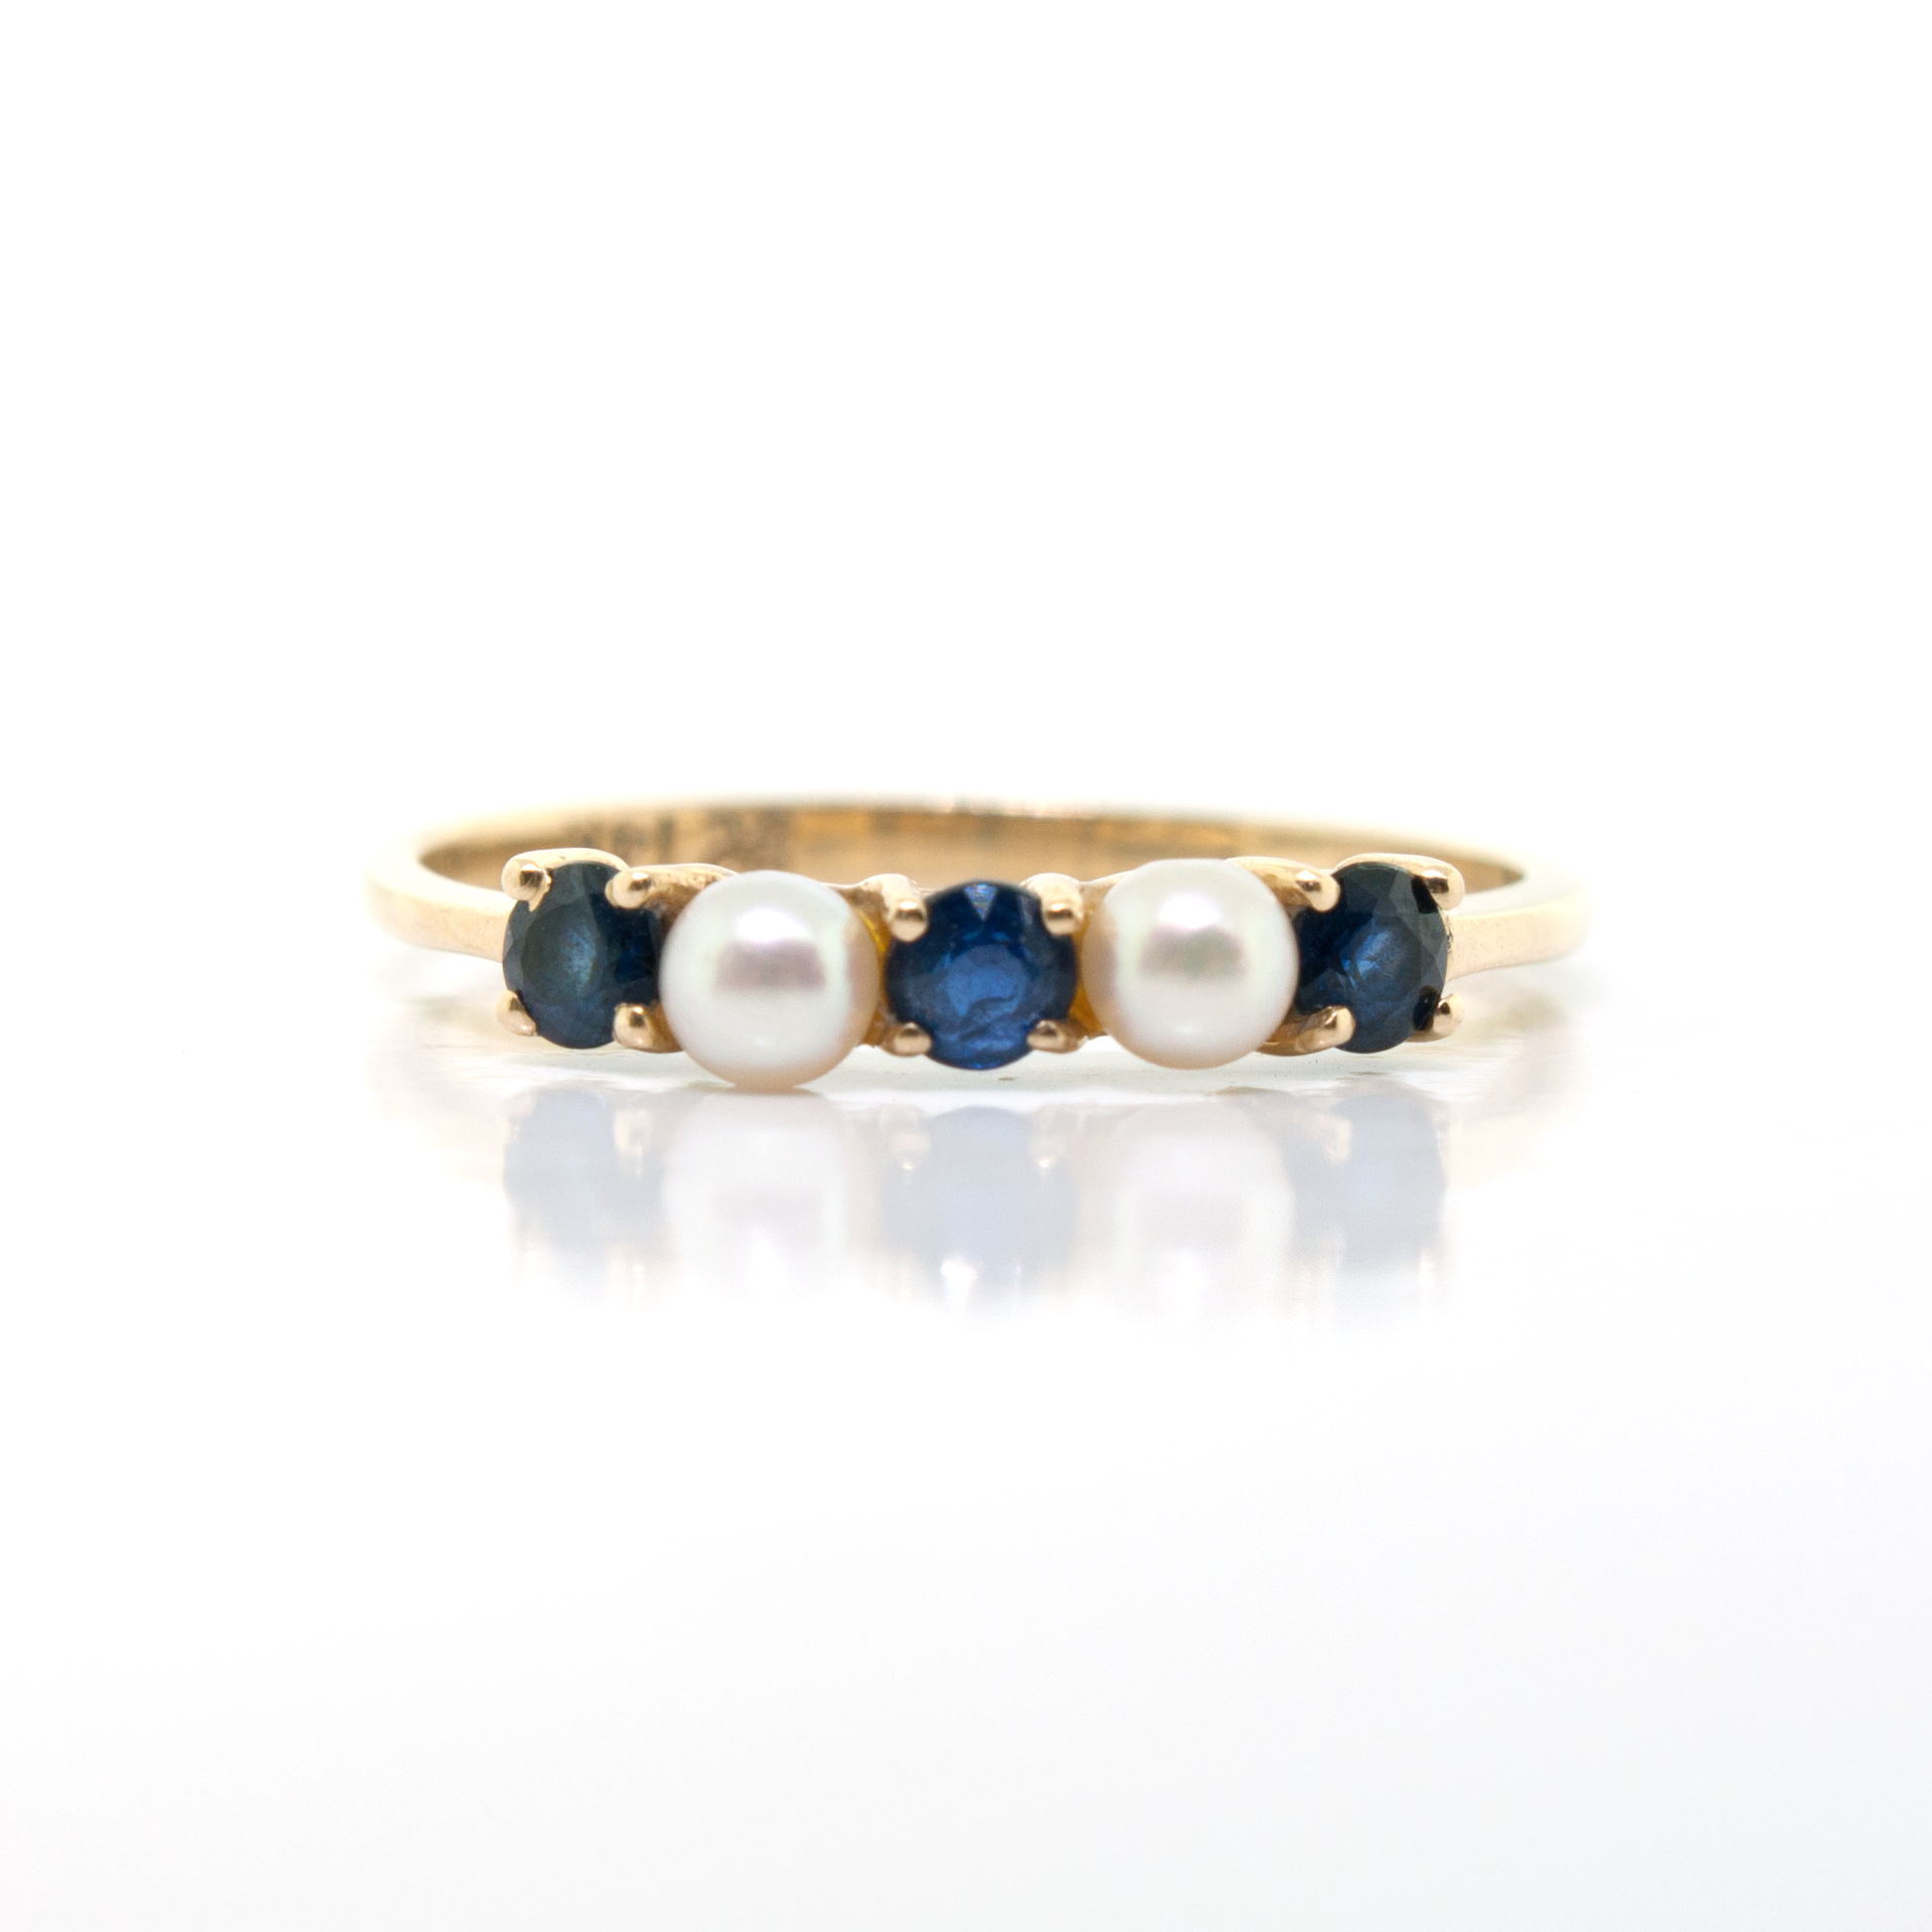 Tiffany Pearl & Sapphire Ring